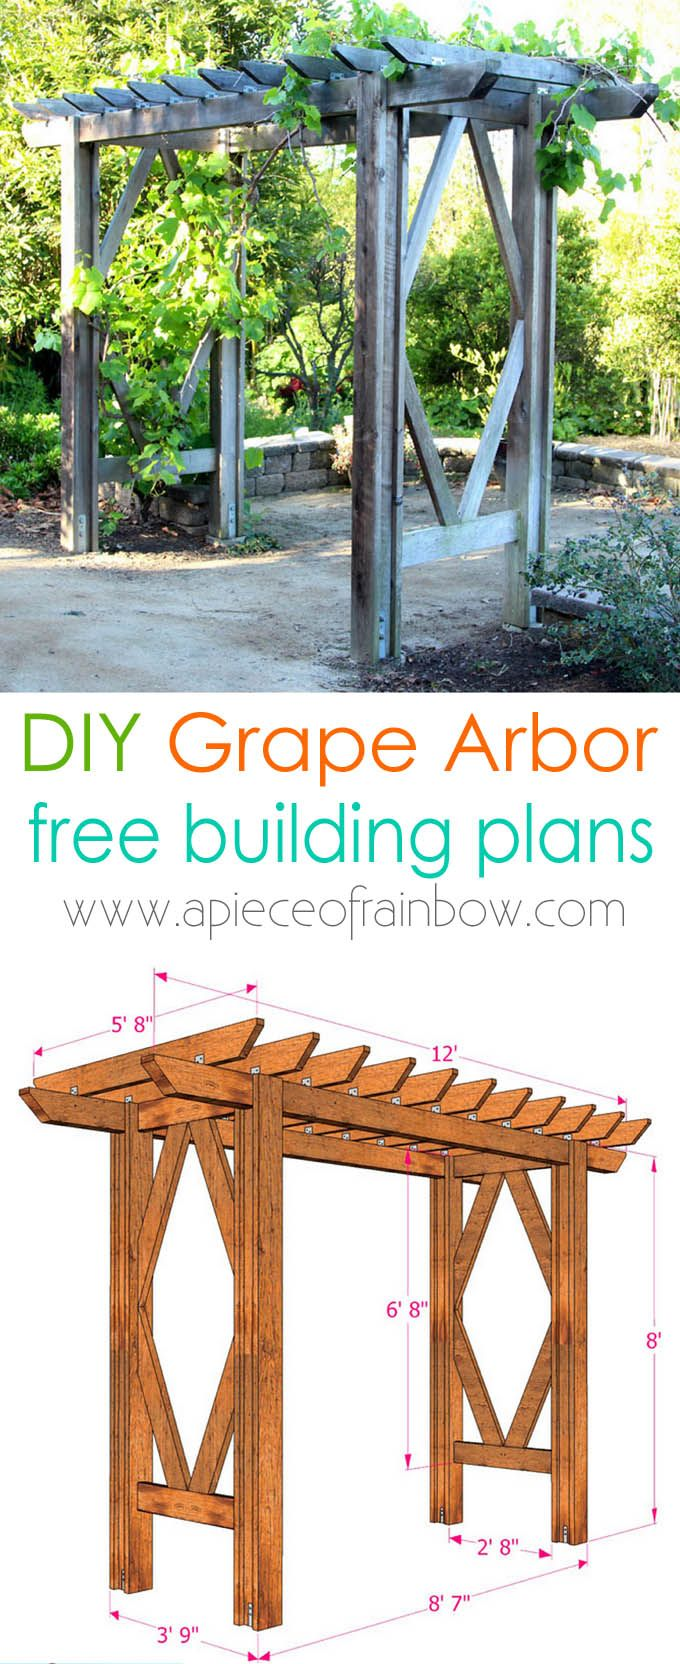 Pergola do-it-yourself for grapes or arbors: step by step instructions 81